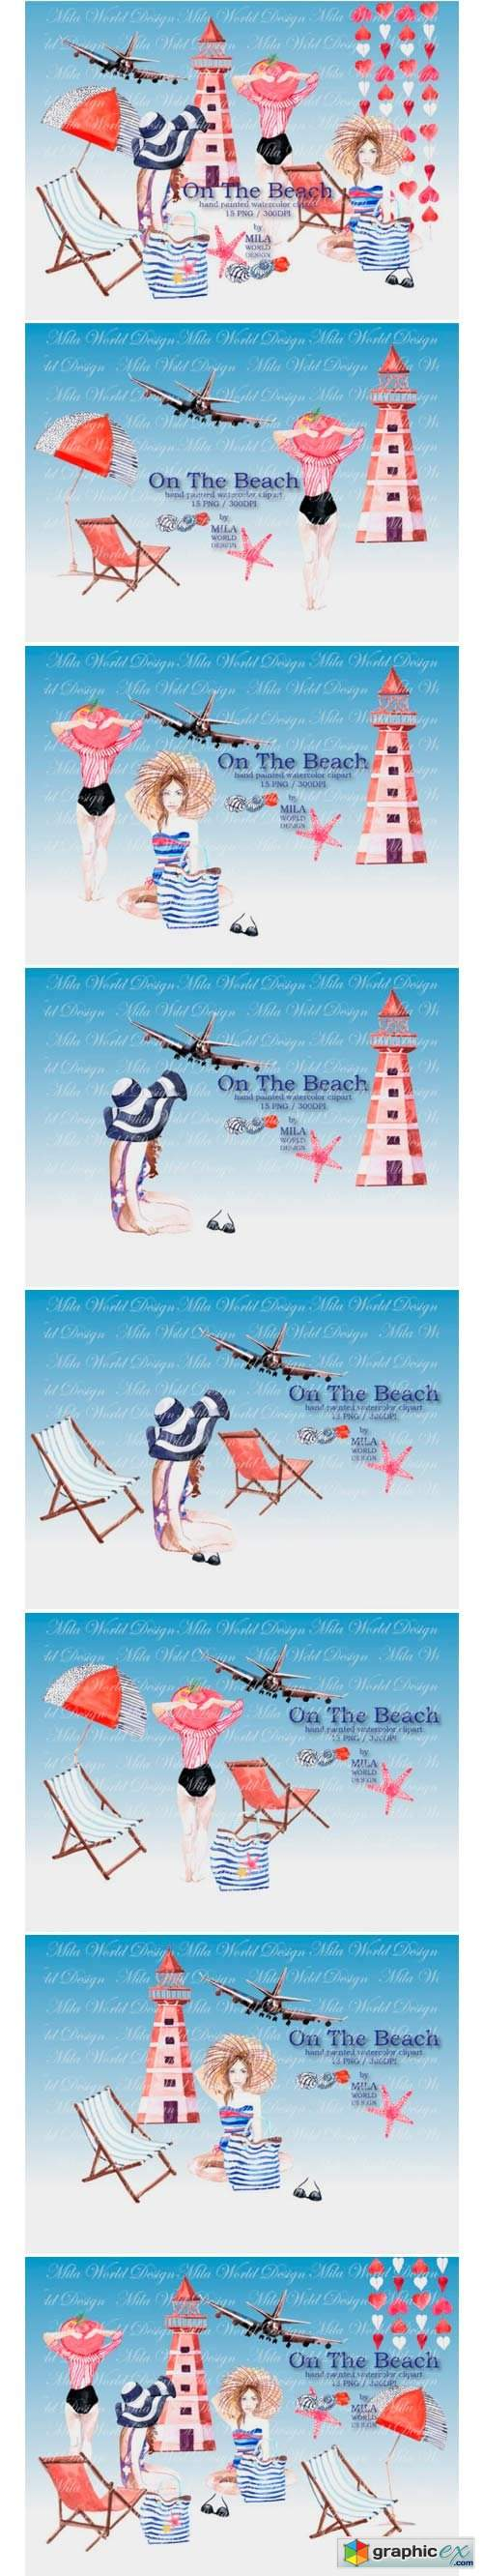 On the Beach Watercolor Clip Art